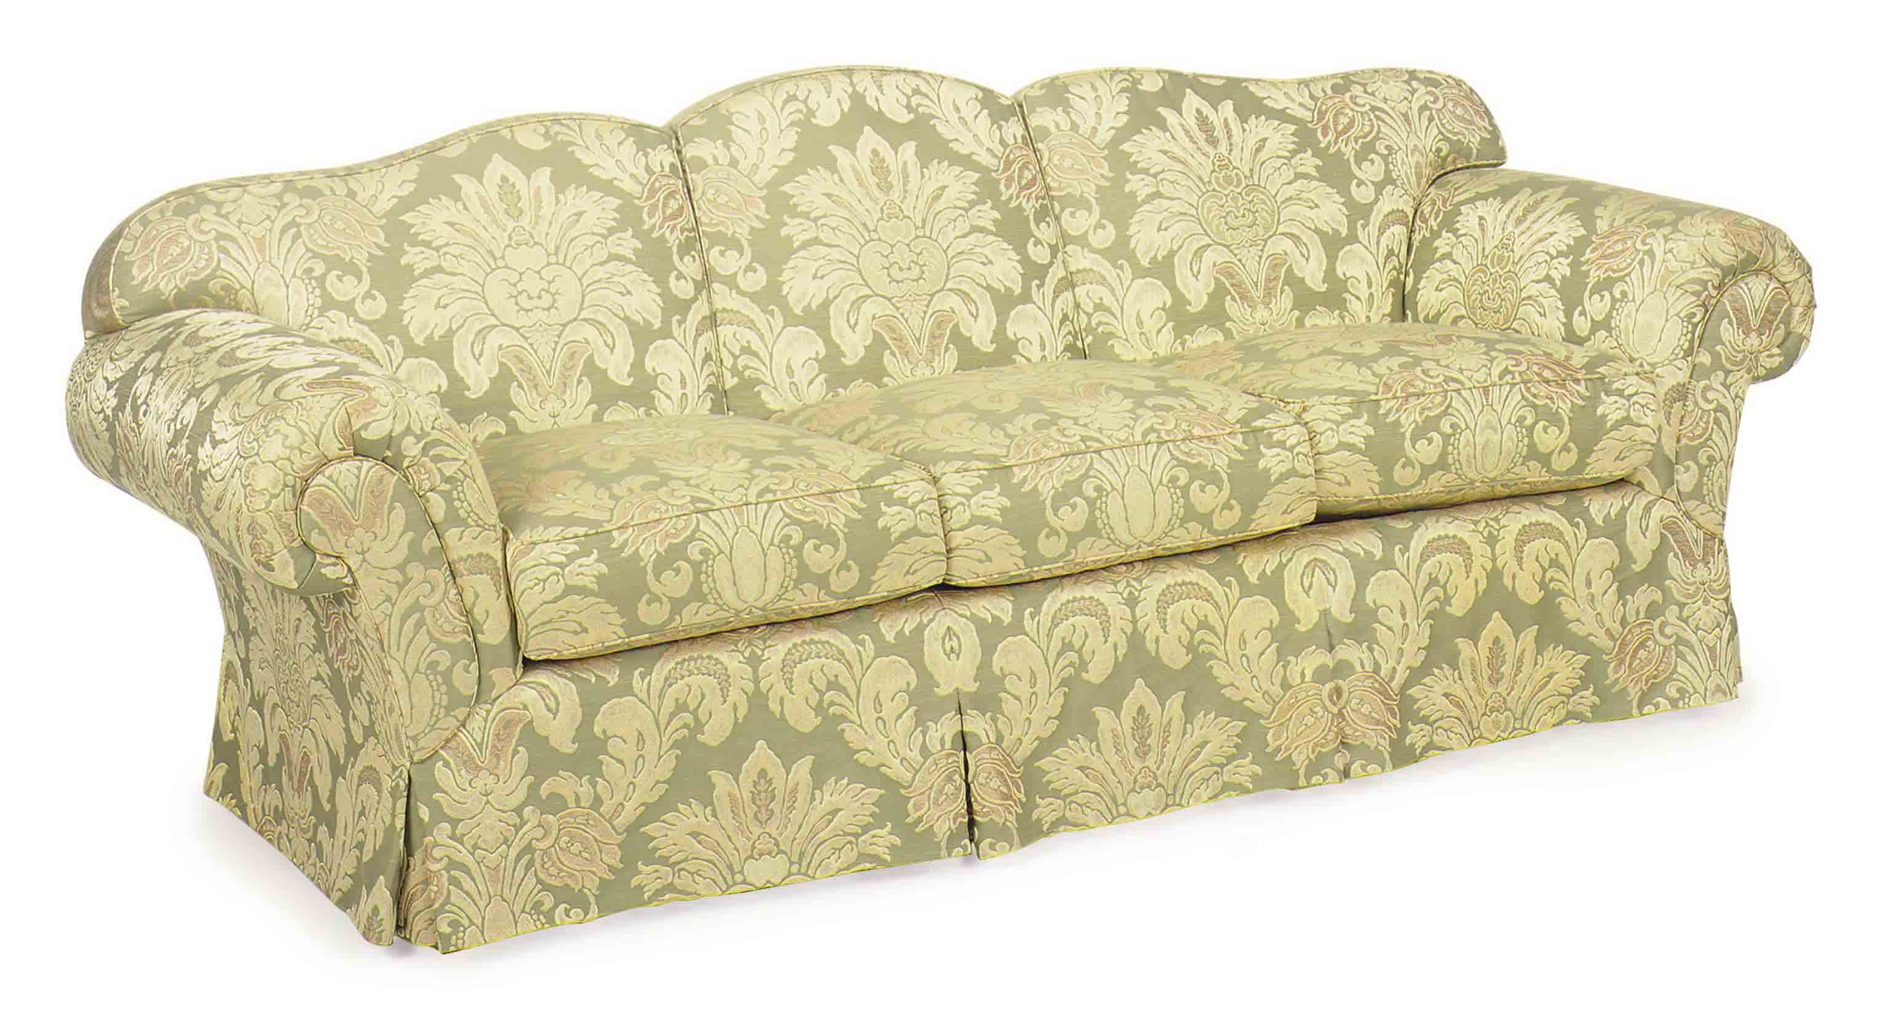 Sofa Set Olx Oman Sold Floral Sofa For Sale Saanich Victoria Floral Sofas For Sale